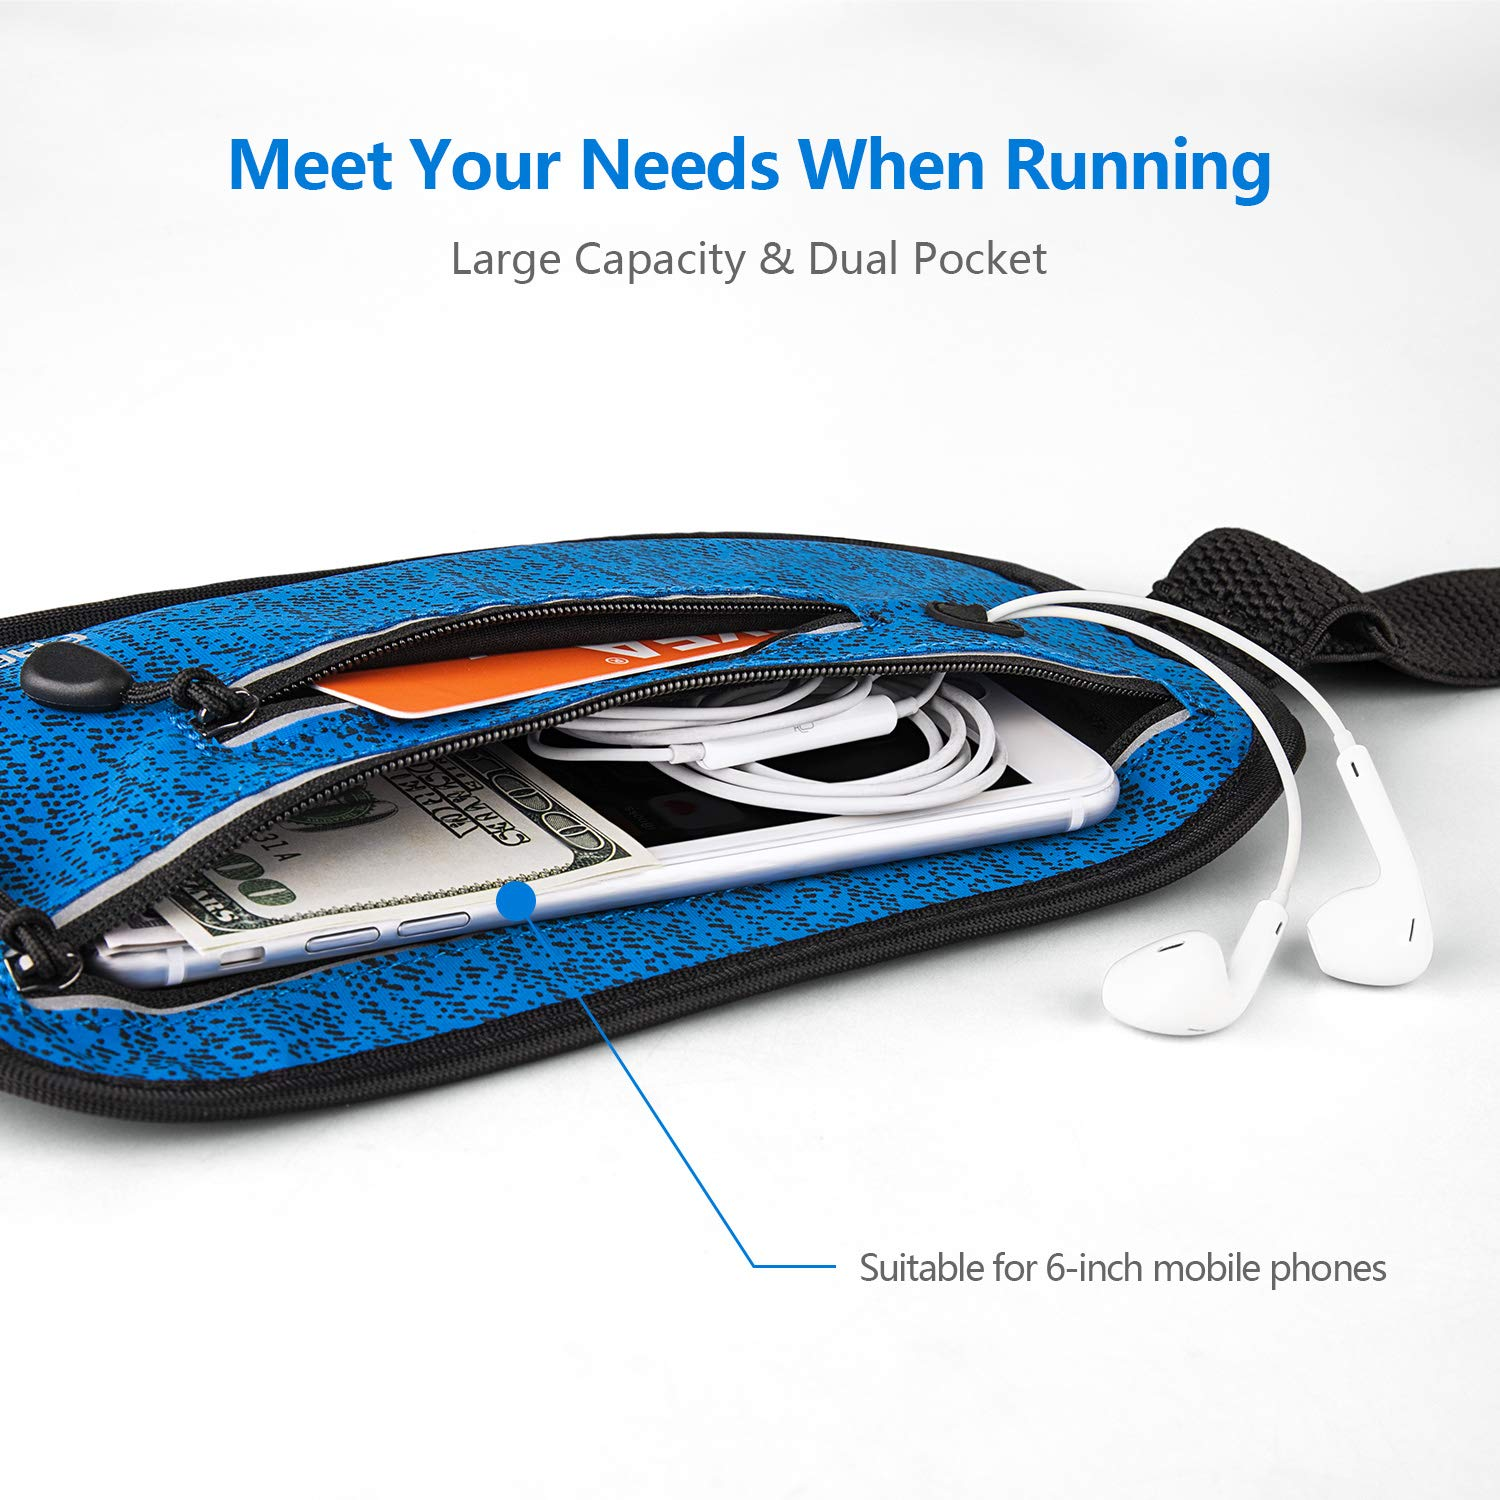 Running Waist Pack,Bounce Free,Pretty-Portable,Ultra-Thin and Next-to-Skin,Layered Pockets,Water-Proof,Sweat-Proof,Suitable for Cellphone Below 6 Inches FREETOO Running Belt